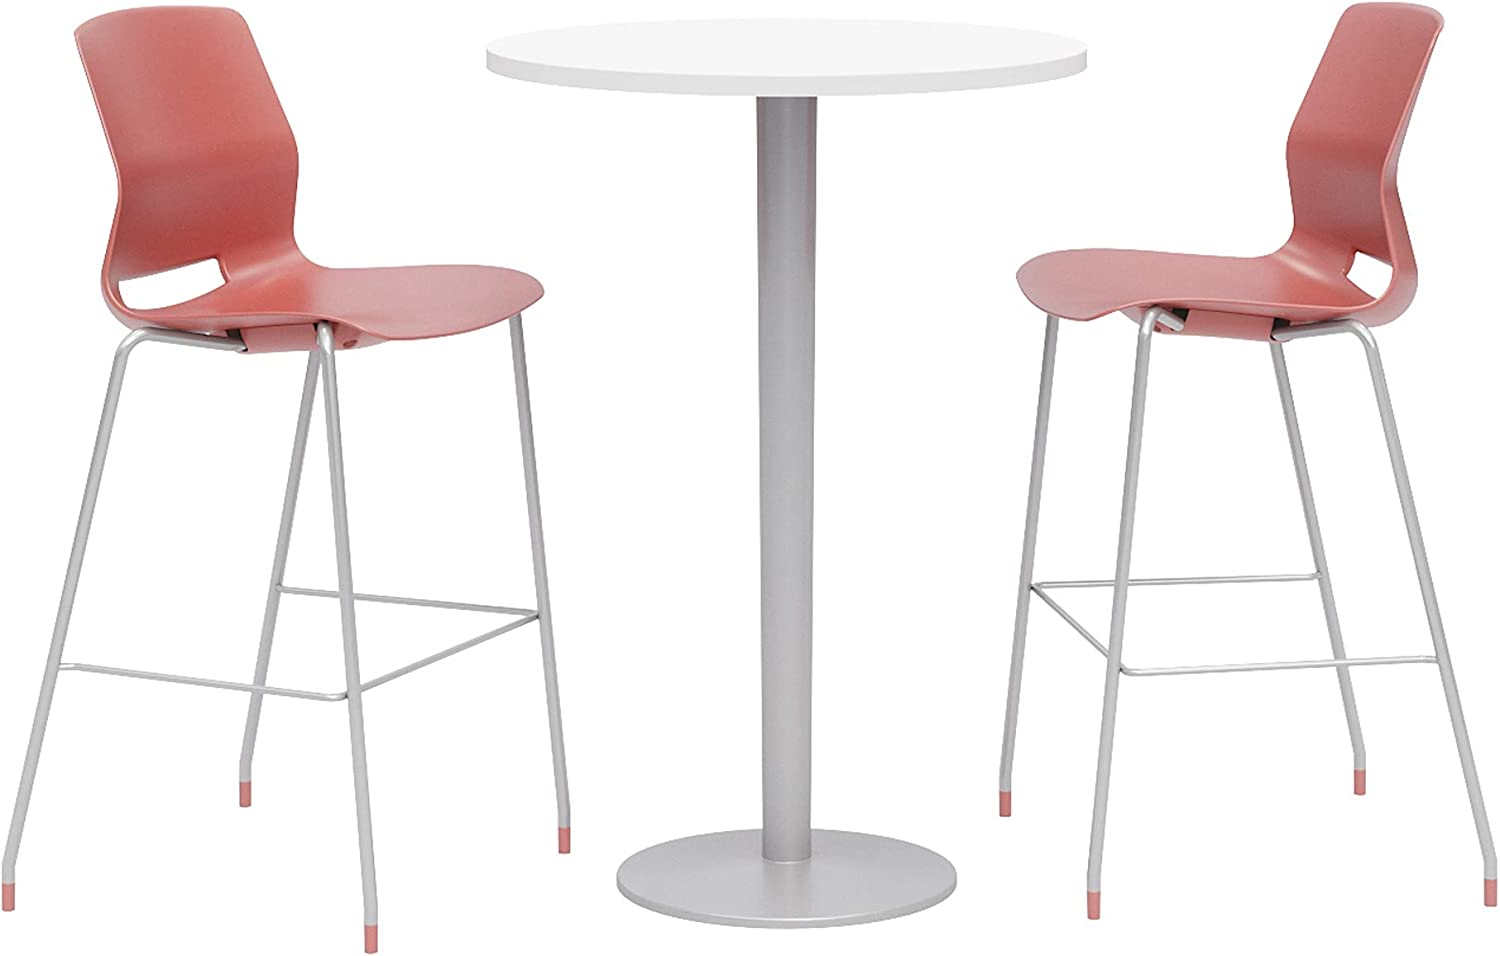 Olio Designs Dining Room Furniture, Designer White Table, Coral Stools